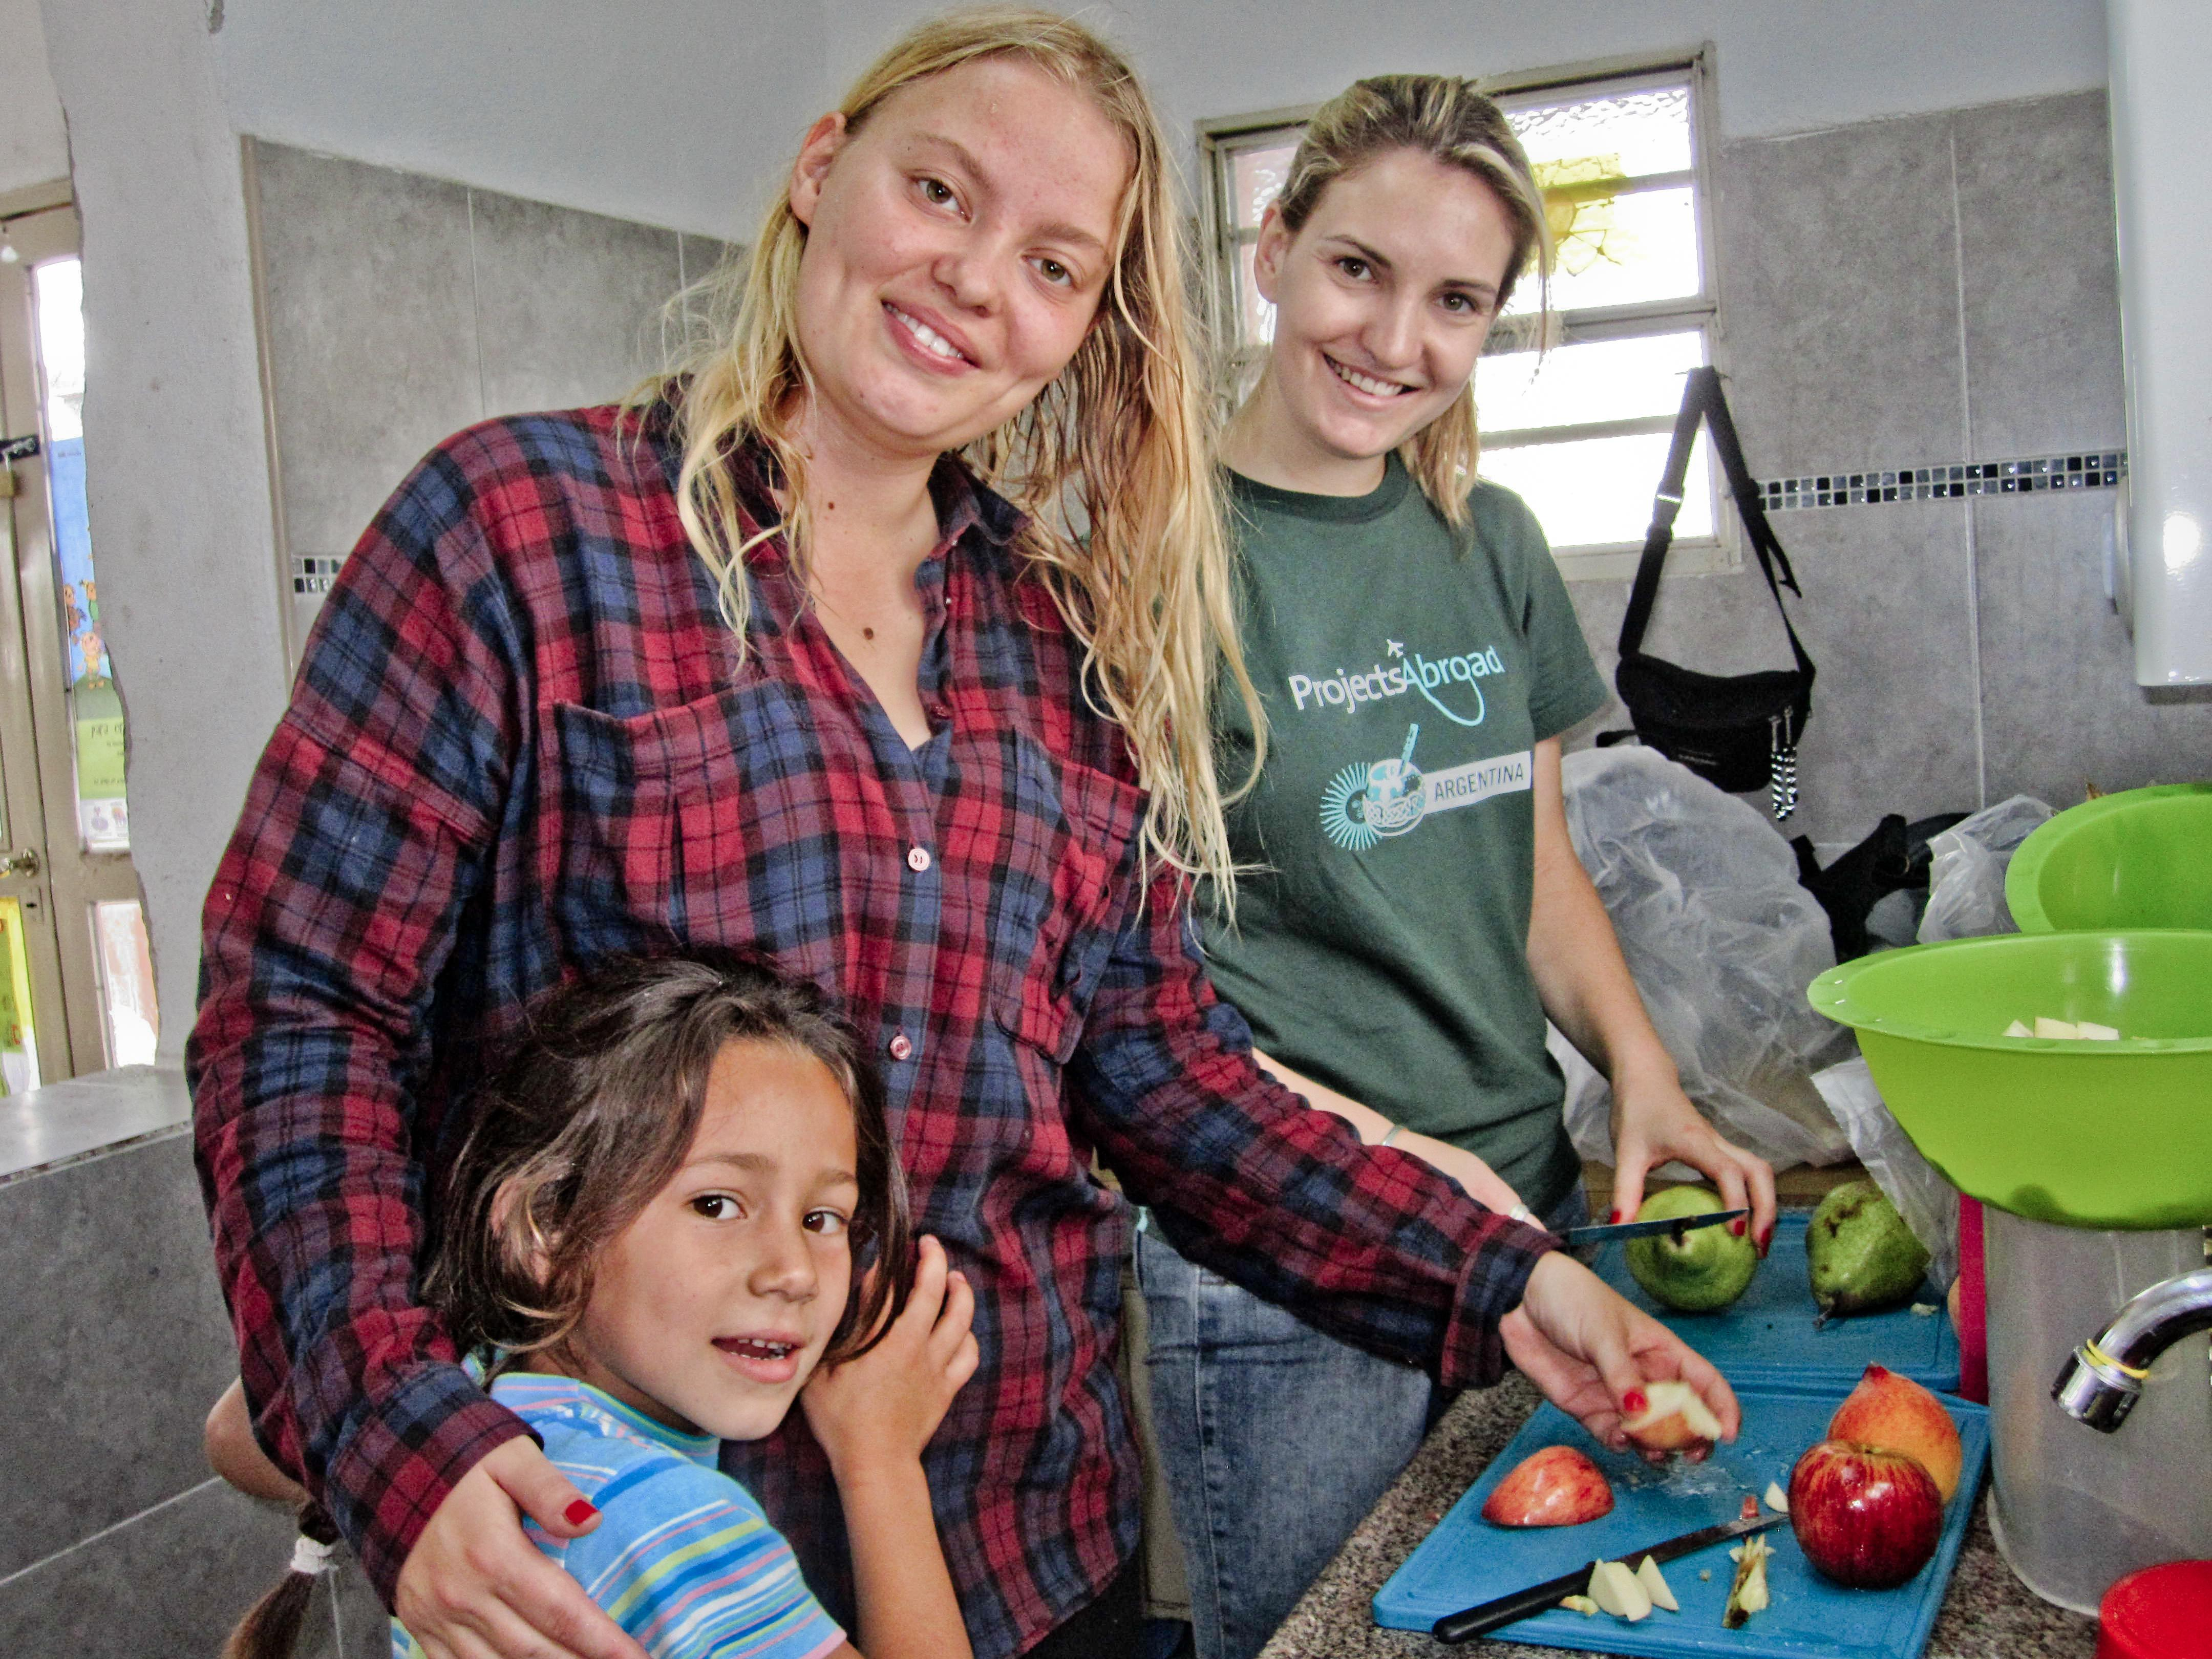 Projects Abroad volunteer working with children in Argentina prepares fruit in dining halls during a Childcare project.